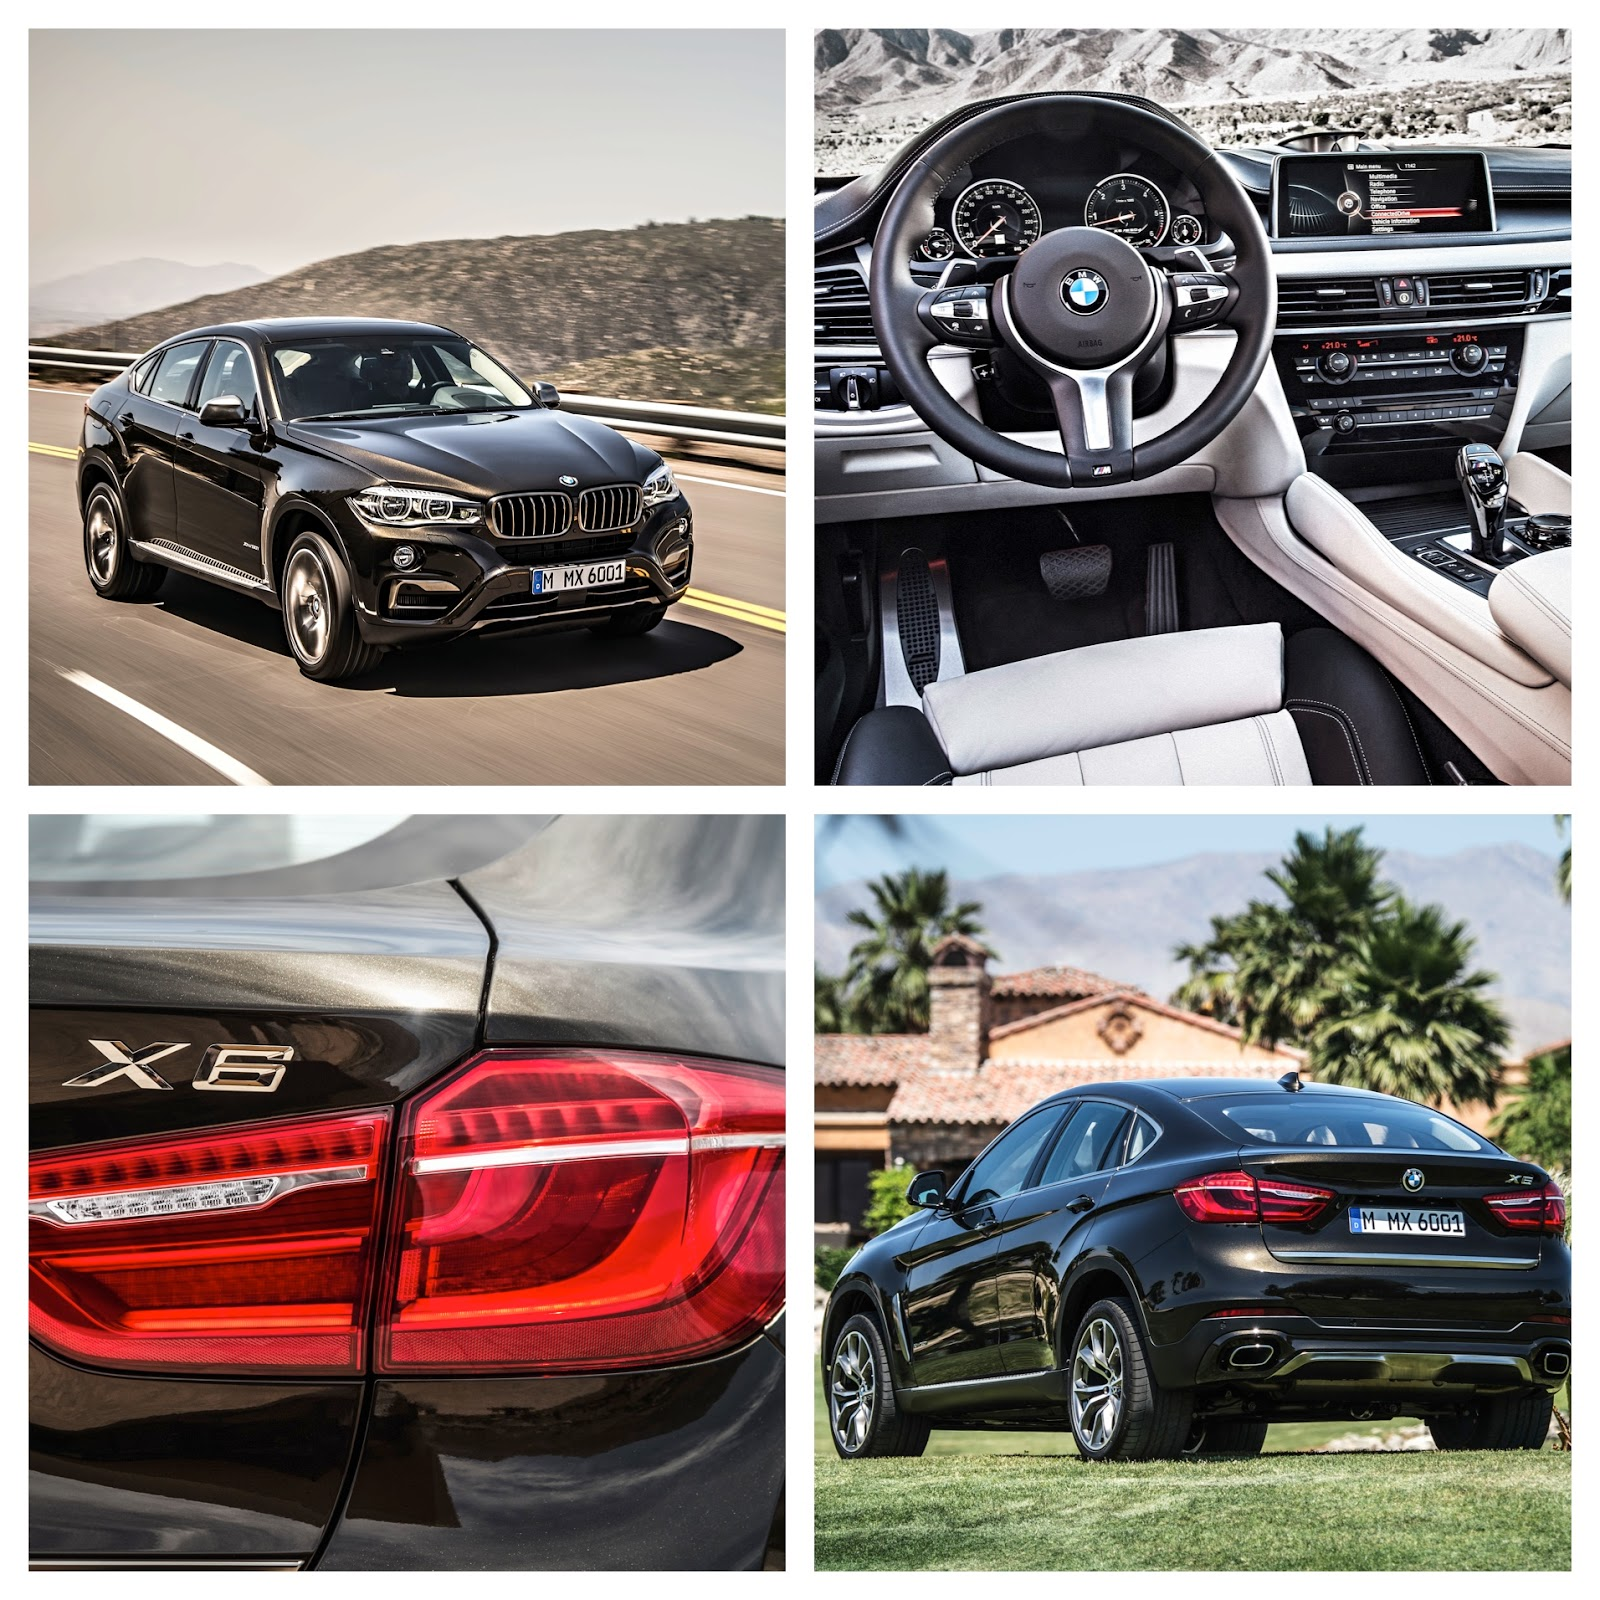 Bmw X6 S: The New BMW X6 And X6 M50d